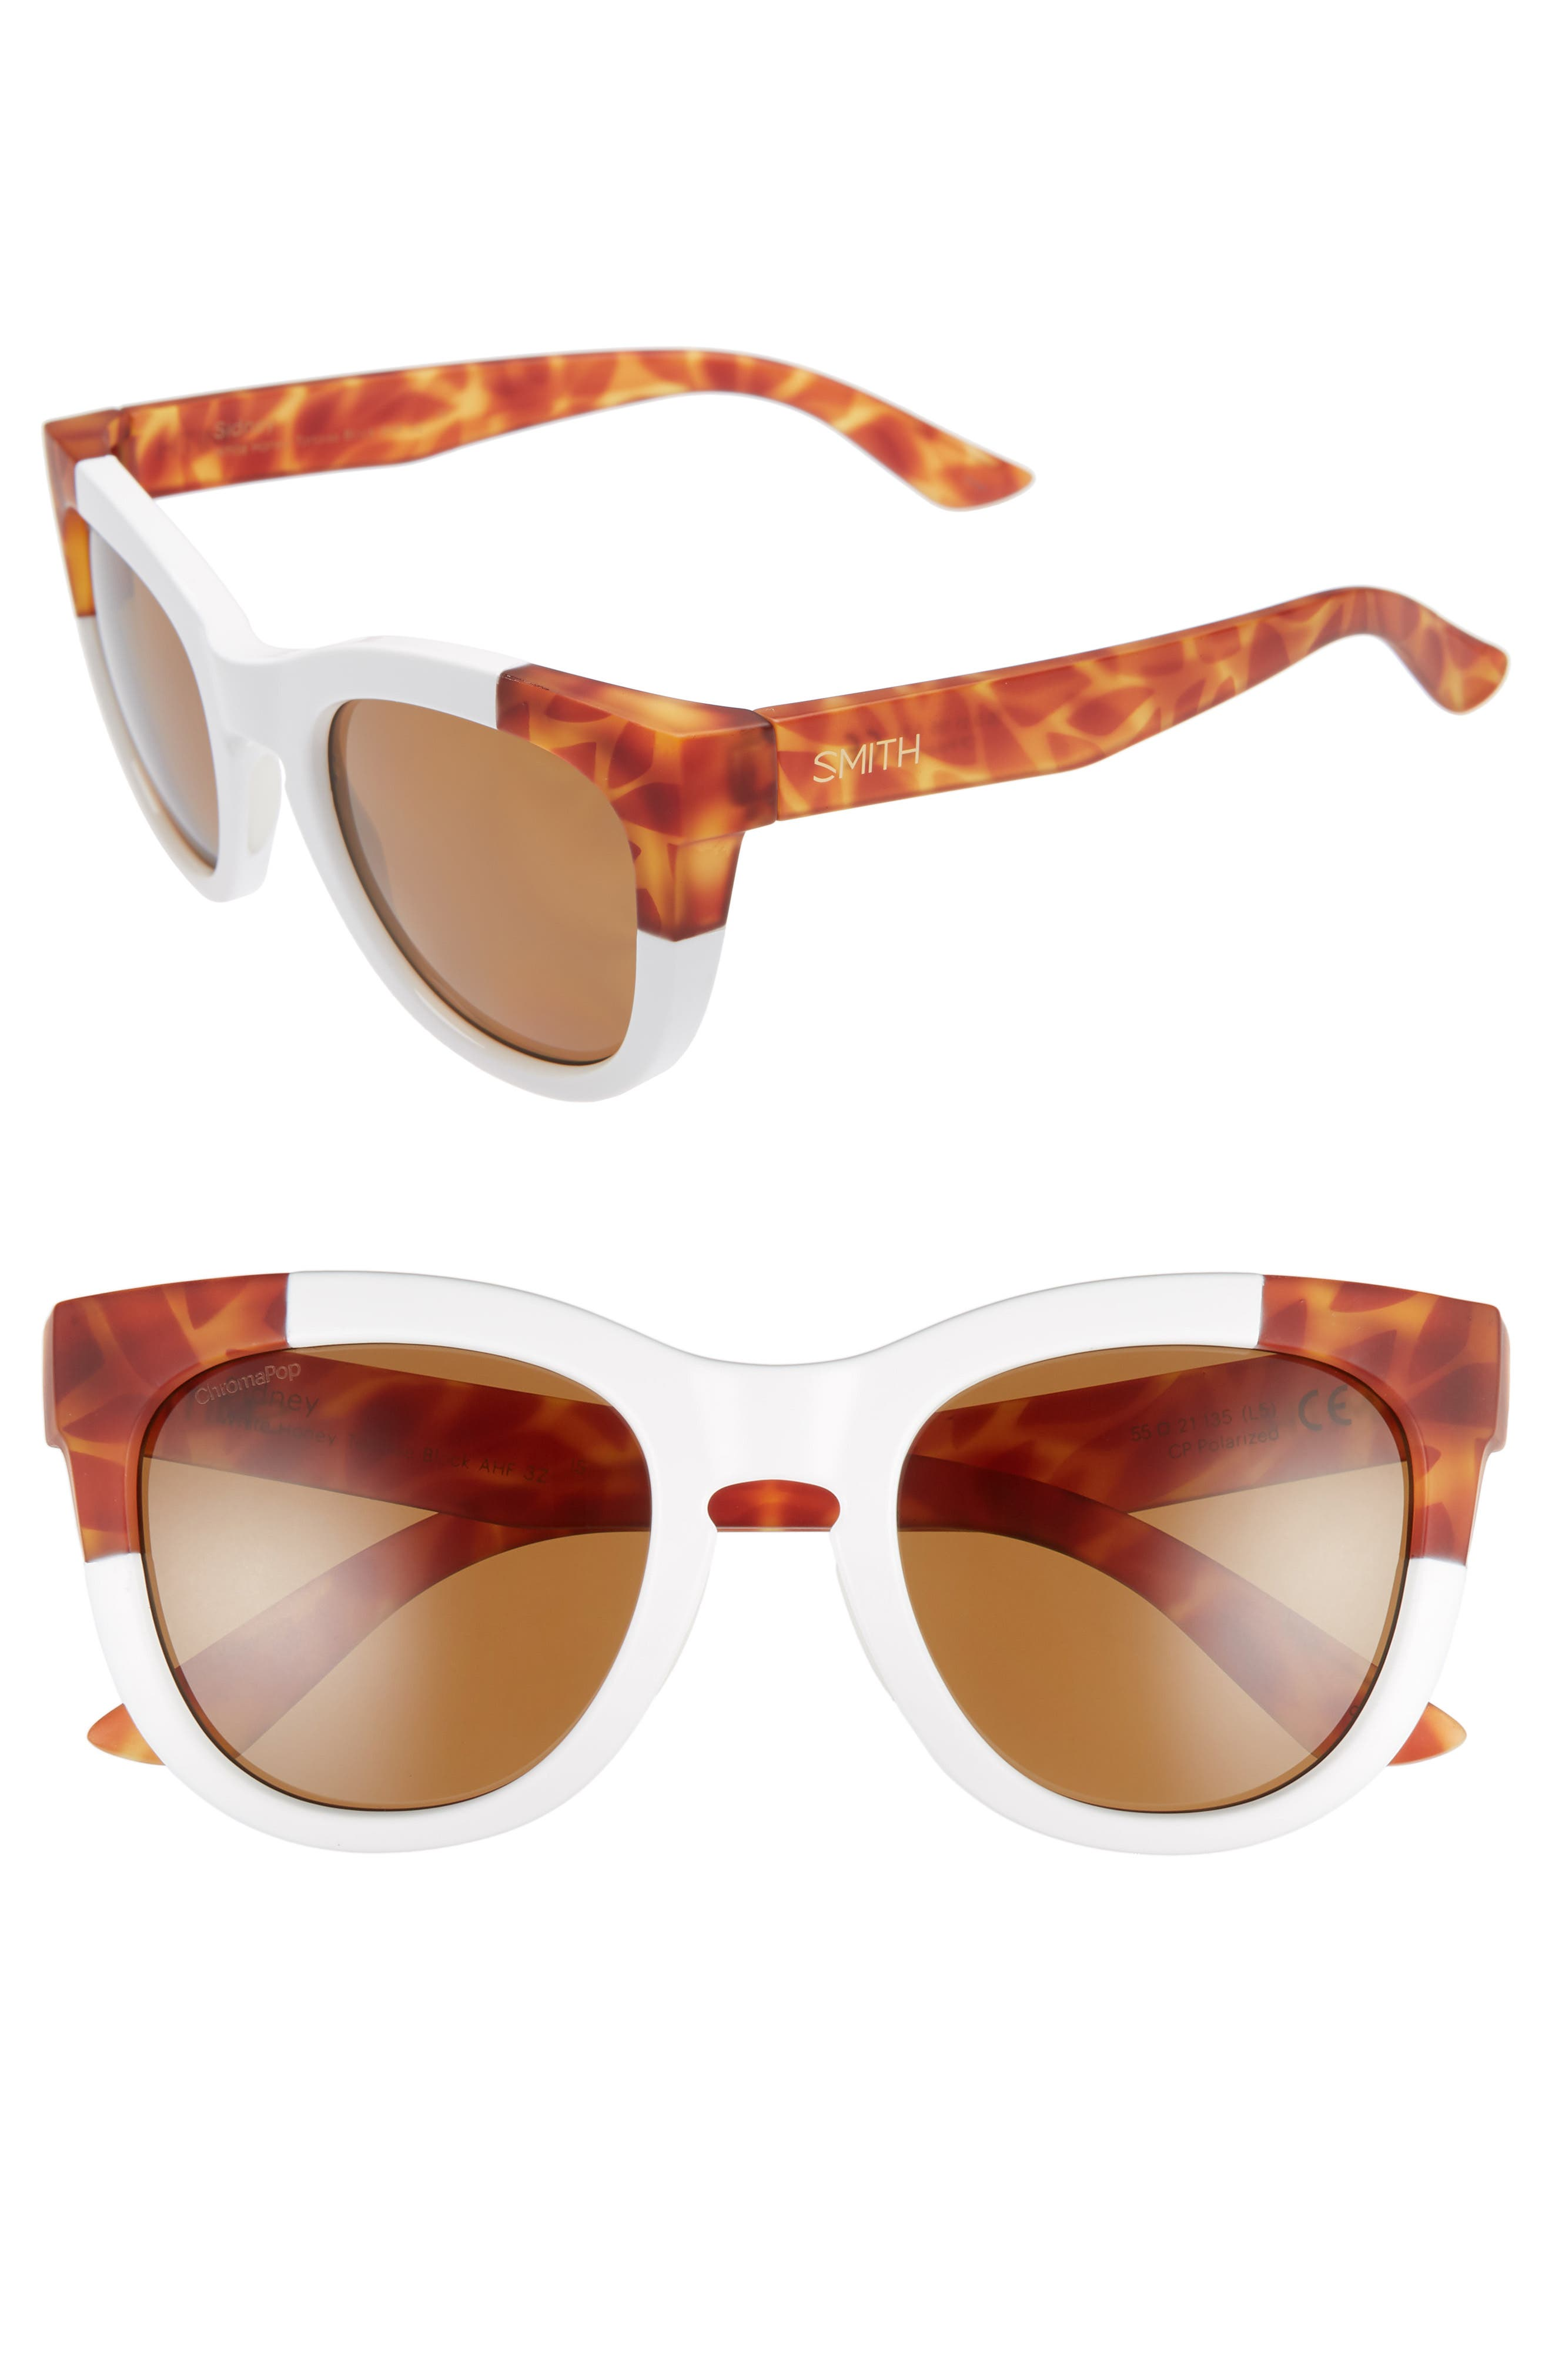 SMITH SIDNEY 55MM CHROMAPOP POLARIZED CAT EYE SUNGLASSES - WHITE/ HONEY TORTOISE